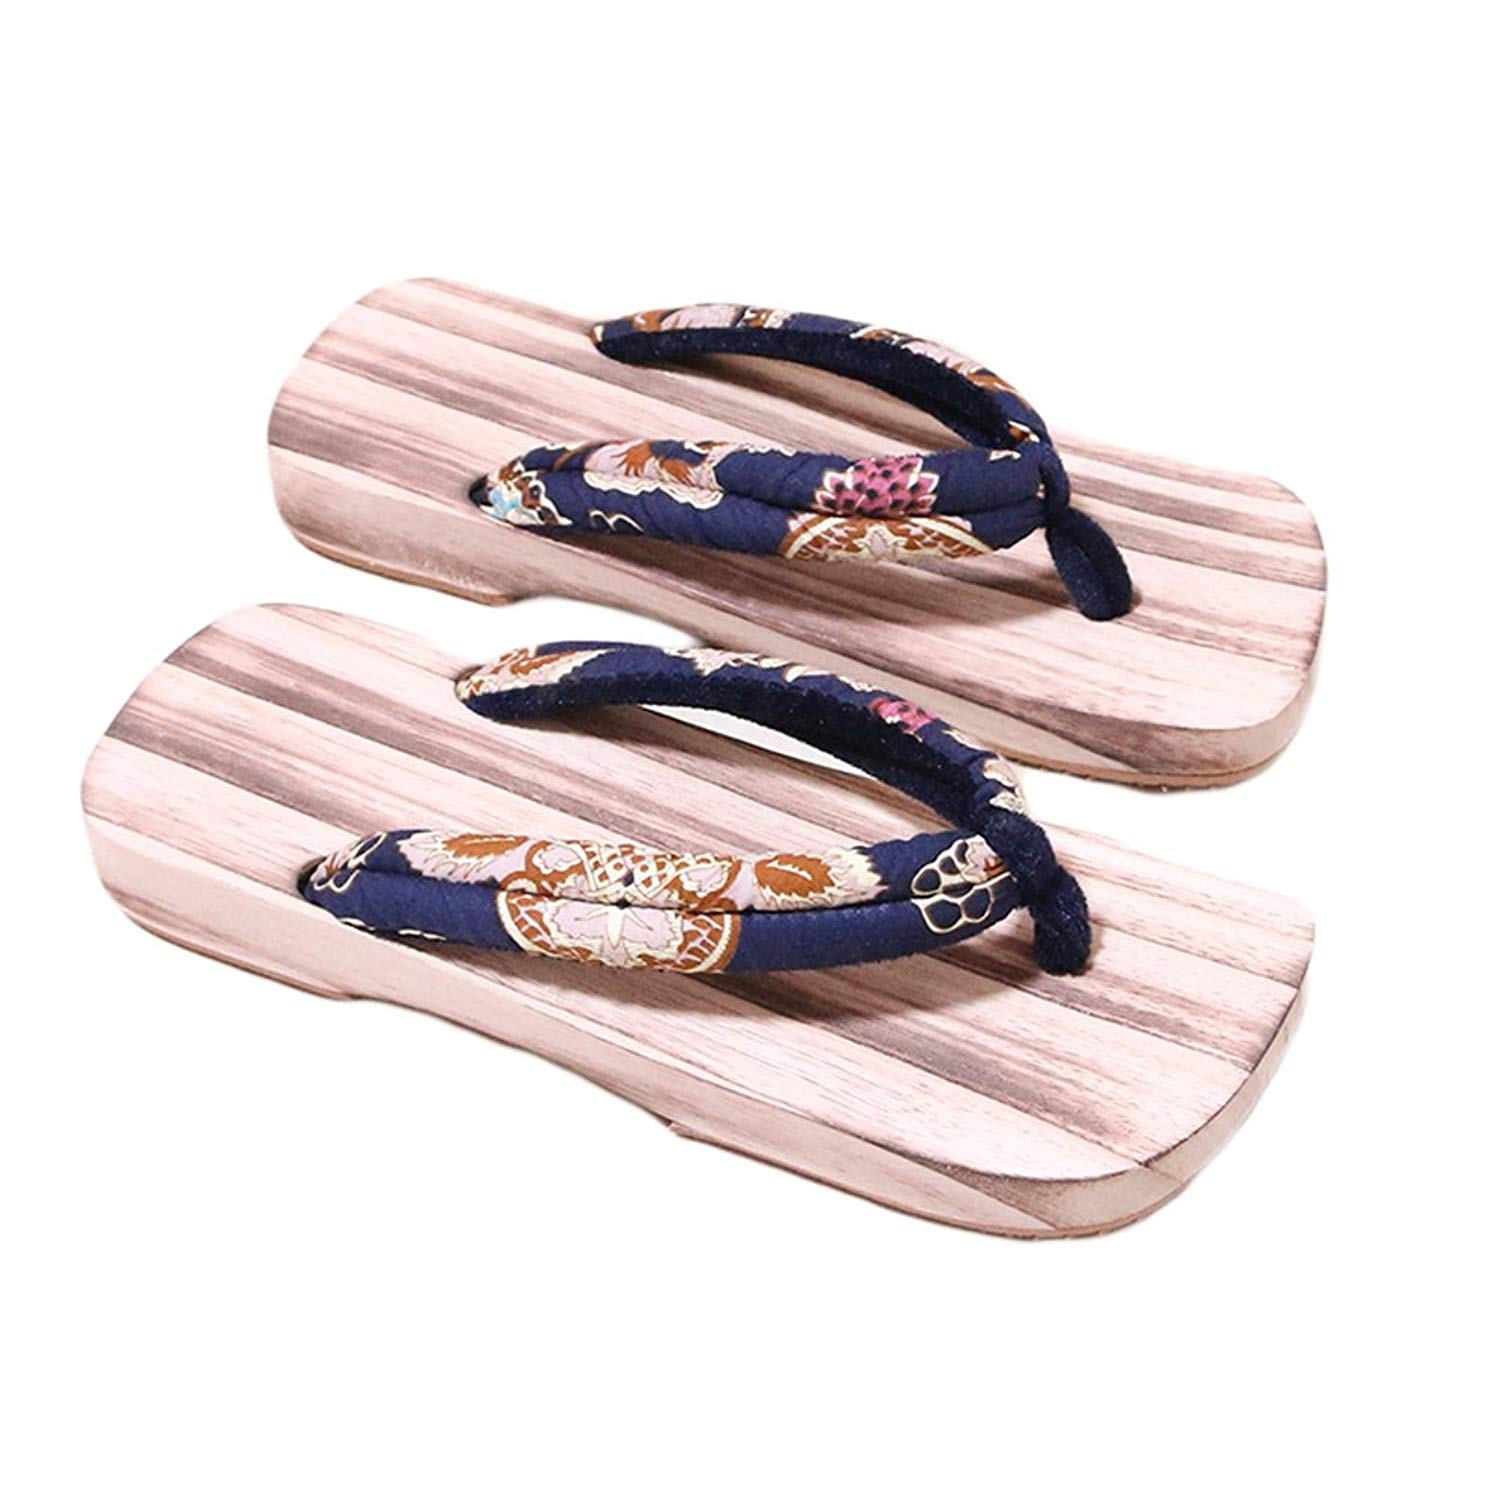 f19f3e1d2876 Get Quotations · BeddingHome Women s Japanese Style Wooden Geta Clogs  Floral Print Summer Antiskid Sandals 2018